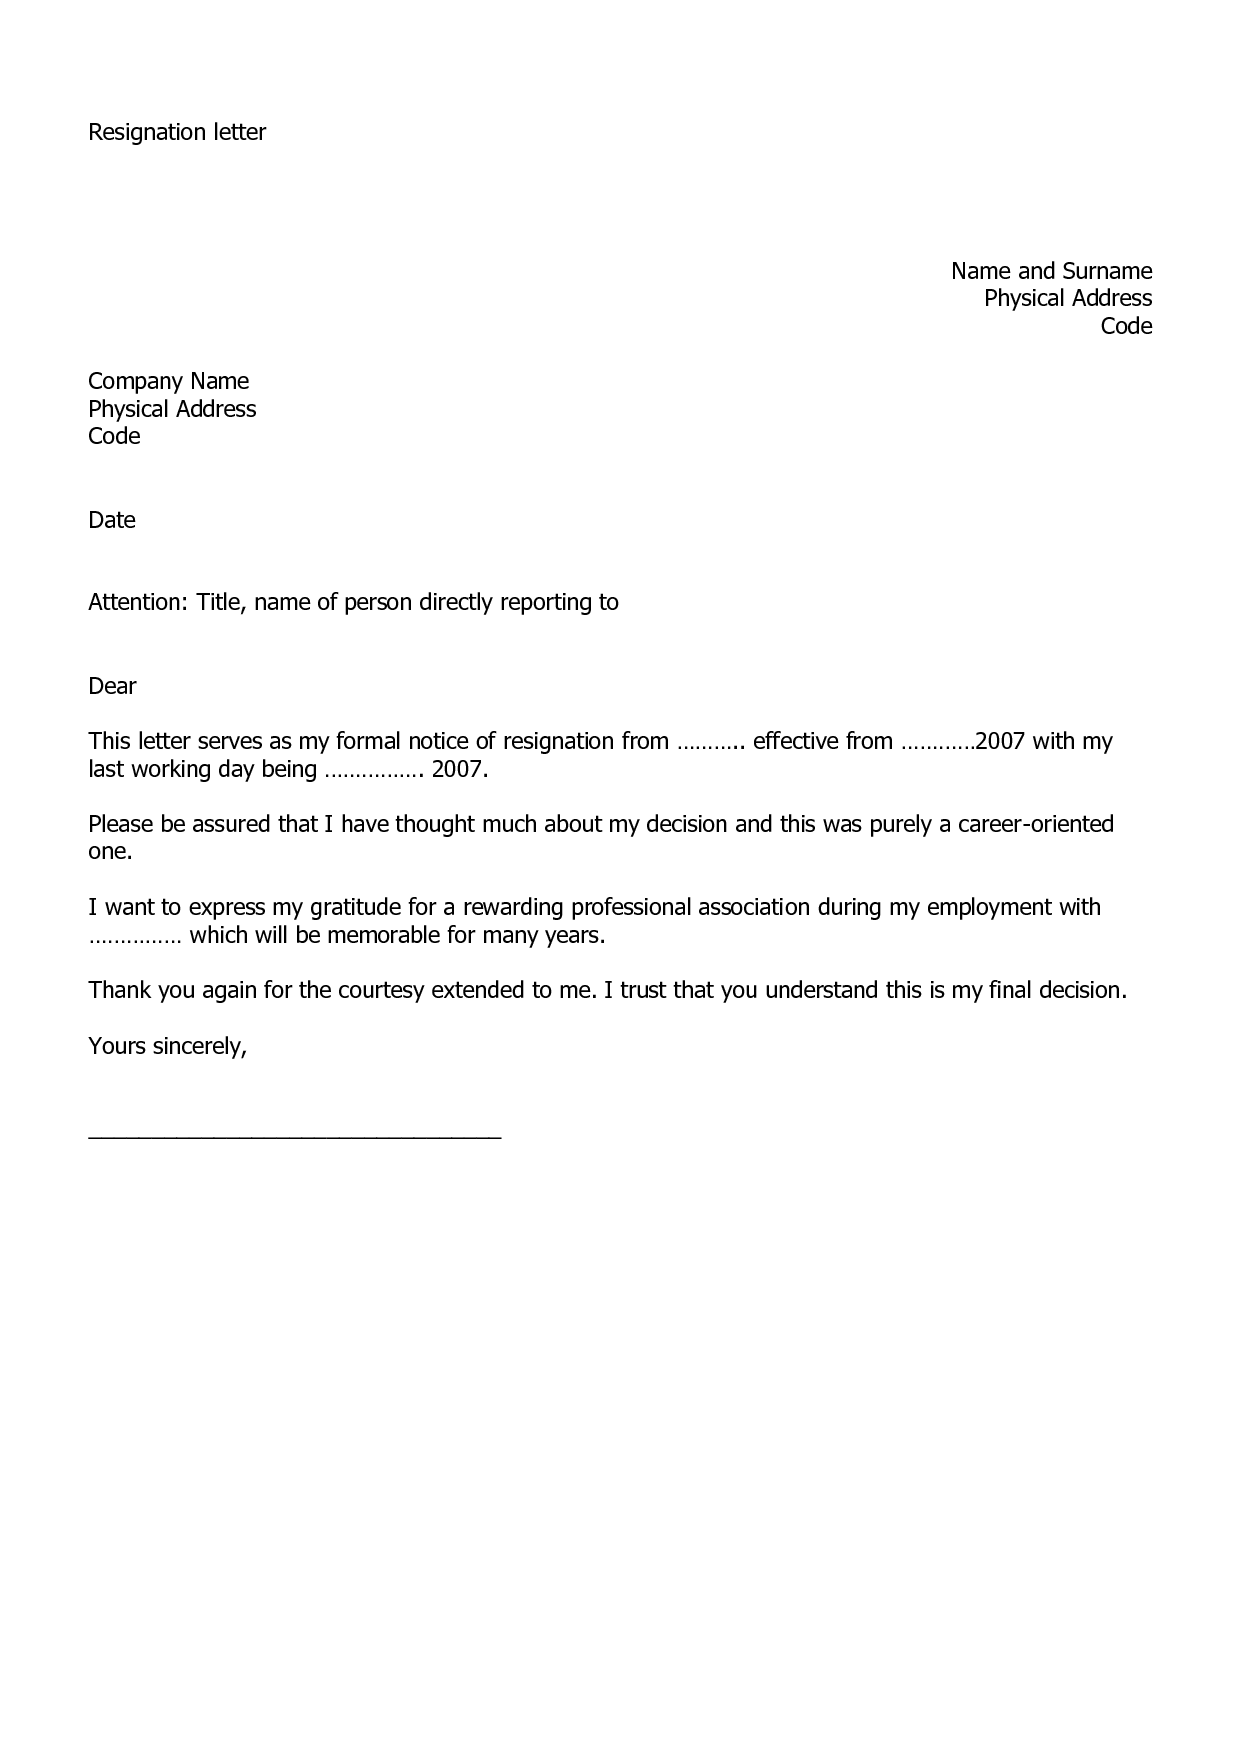 Resignation Letter Examples | Masks | Pinterest | Resignation ...